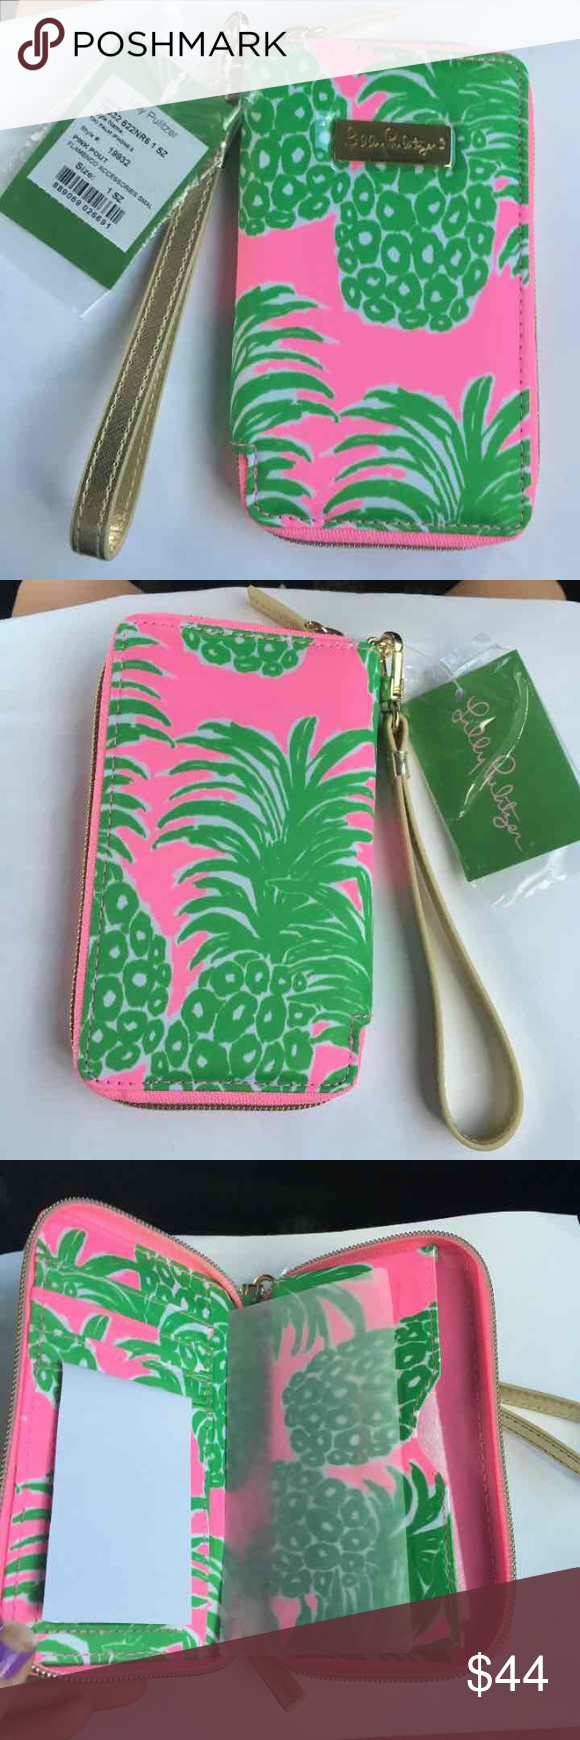 ❗️SALE❗️$48 Lilly Pulitzer wristlet New with tags $48 Lilly Pulitzer wristlet in flamenco in tiki Palm iPhone 6// brand new, perfect condition, never used before Lilly Pulitzer Bags Clutches & Wristlets